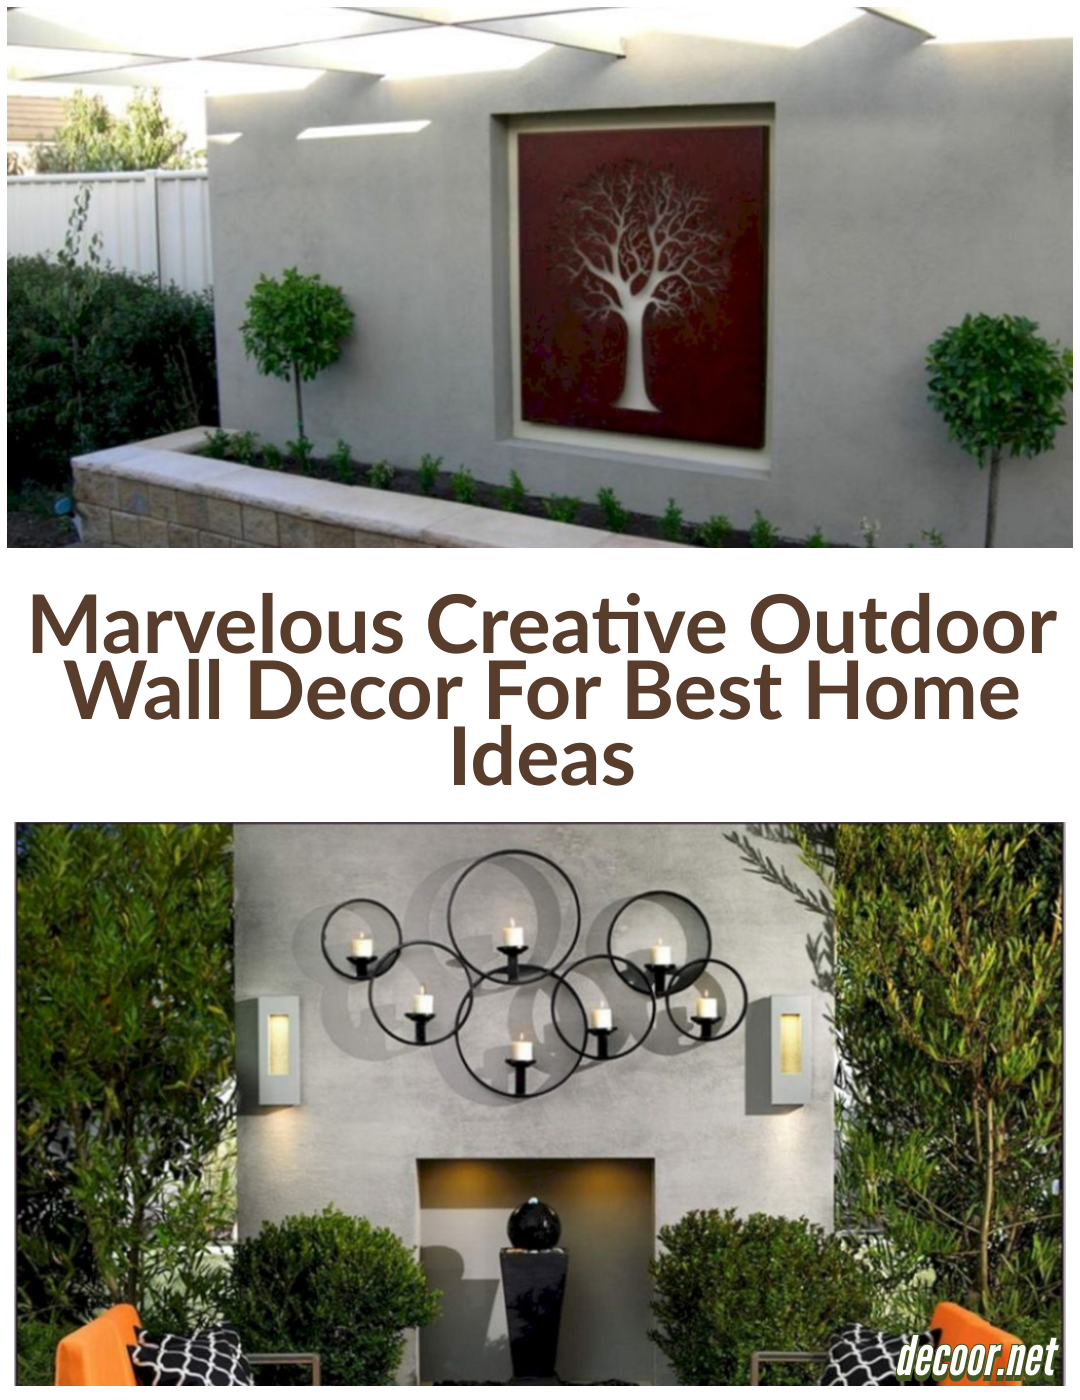 12 Marvelous Creative Outdoor Wall Decor For Best Home Ideas